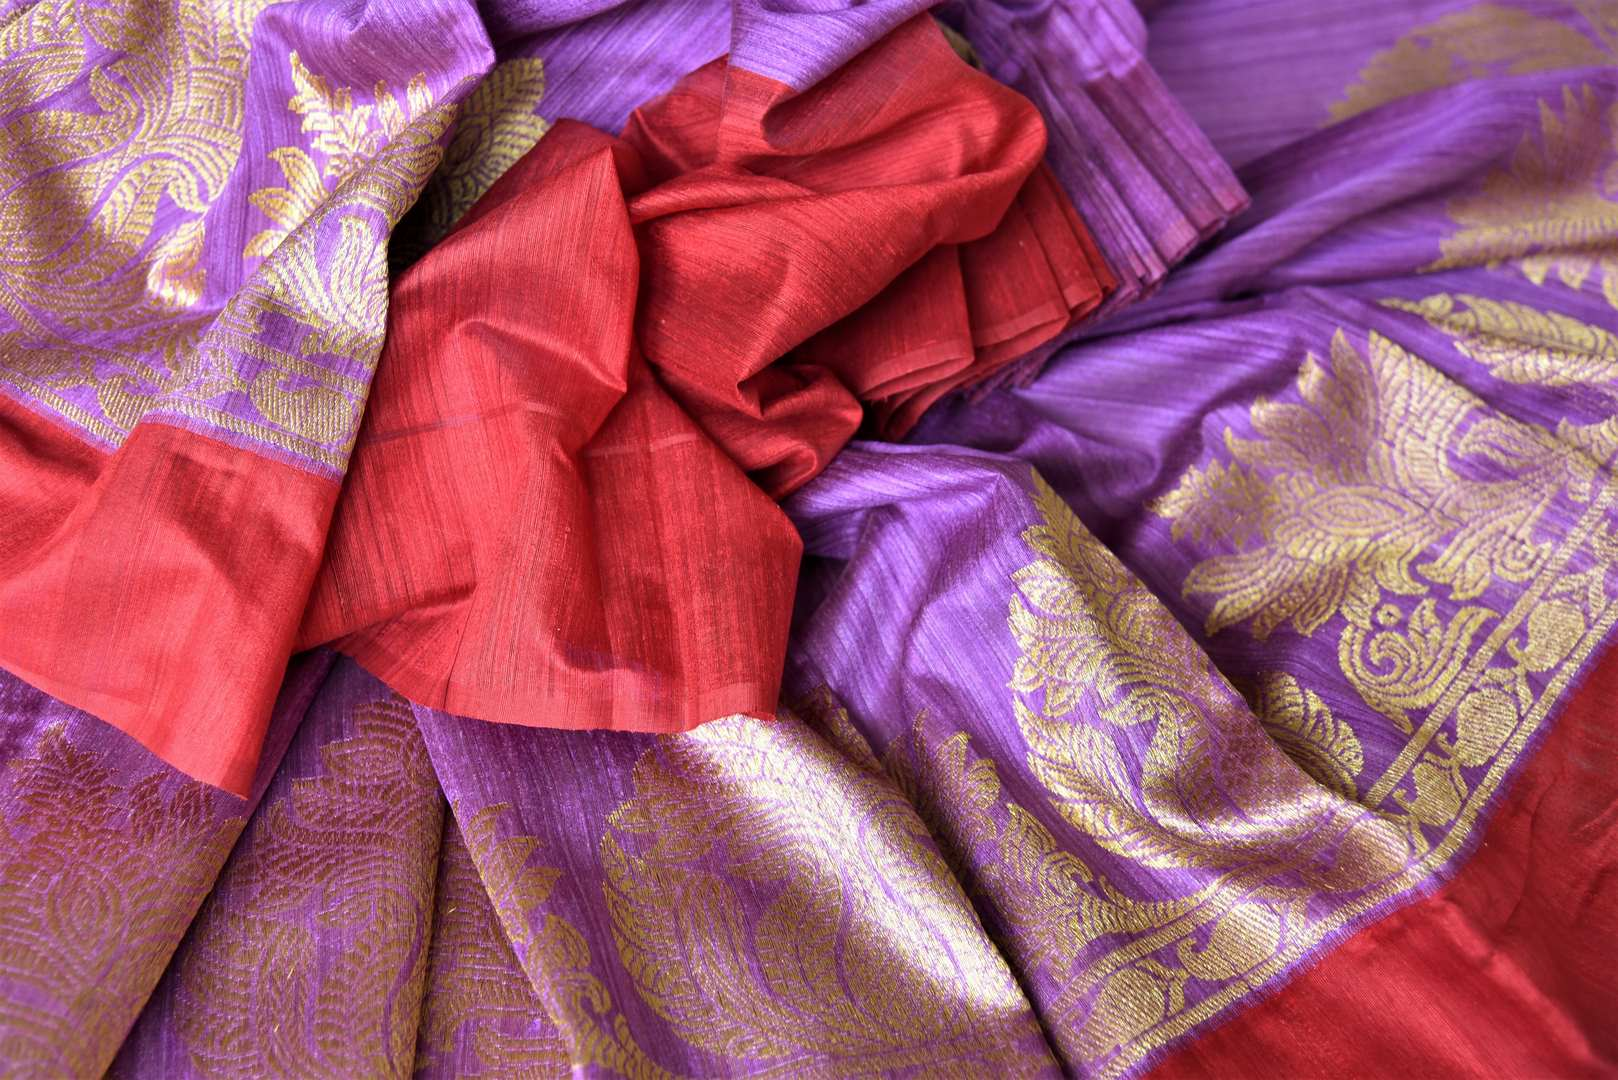 Buy purple matka Banarasi saree online in USA with red border. Give your Indian look an elegant touch with beautiful Indian Banarasi sarees available at Pure Elegance Indian clothing store in USA or shop online.-details